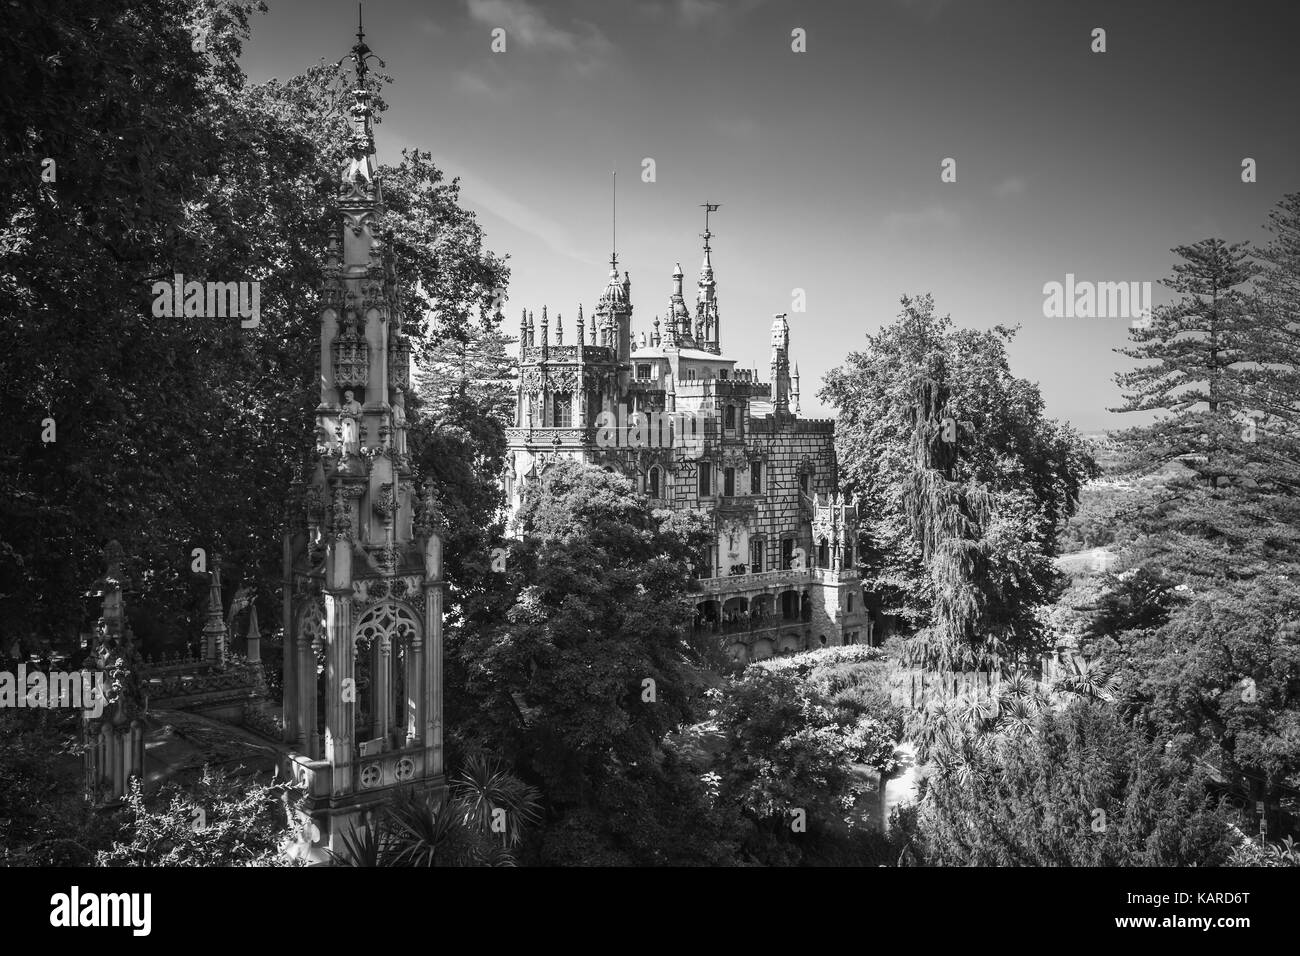 Romantic palace and chapel of Quinta da Regaleira located near in Sintra, Portugal. It was completed in 1910 and - Stock Image